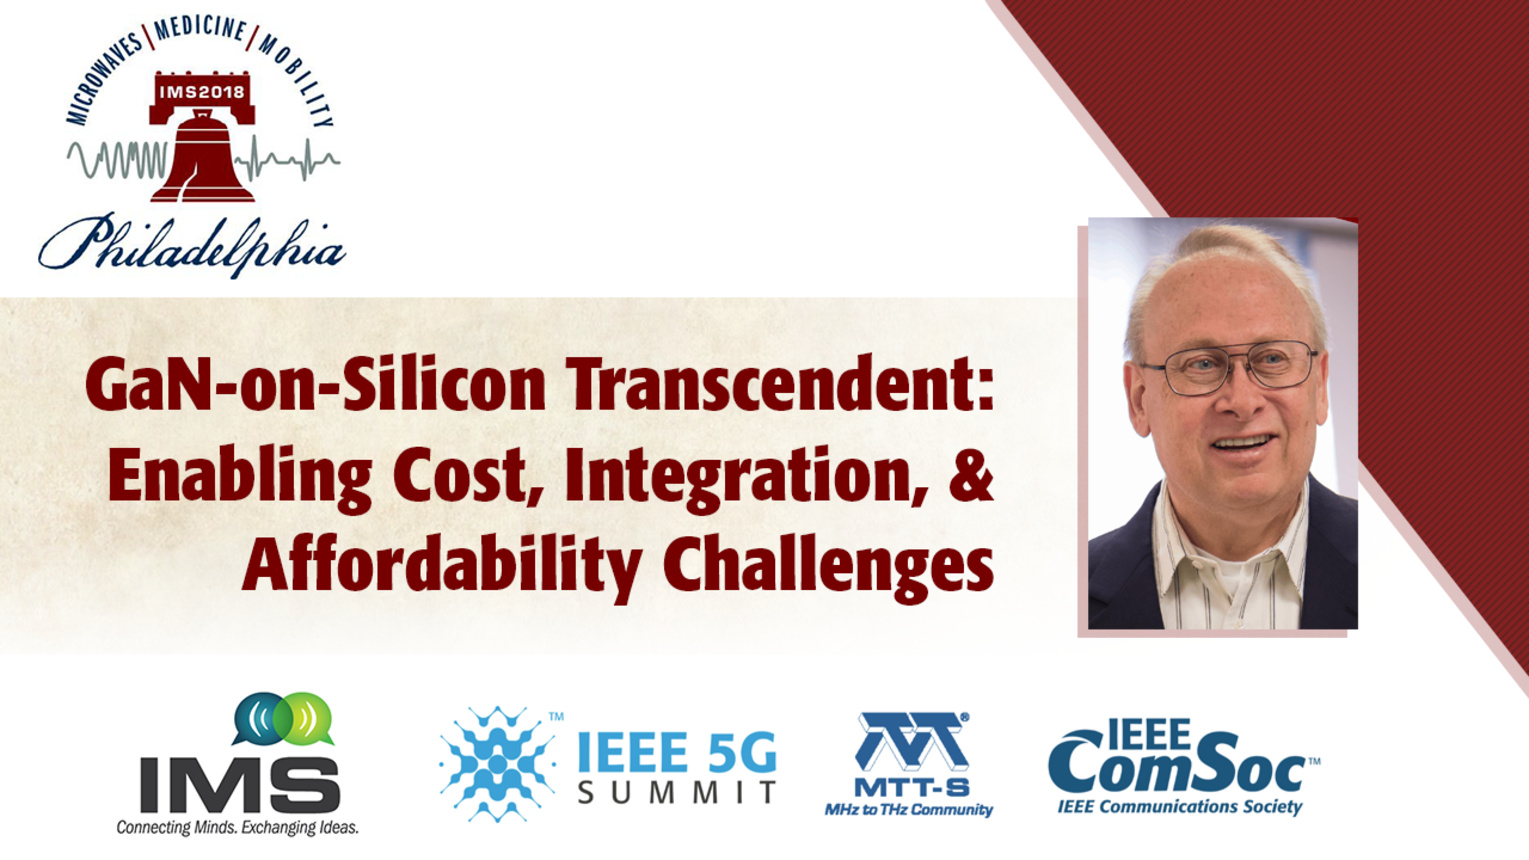 'GaN-on-Silicon Transcendent – Enabling The Cost, Integration, and Affordability Challenges to Make 5G a Reality'